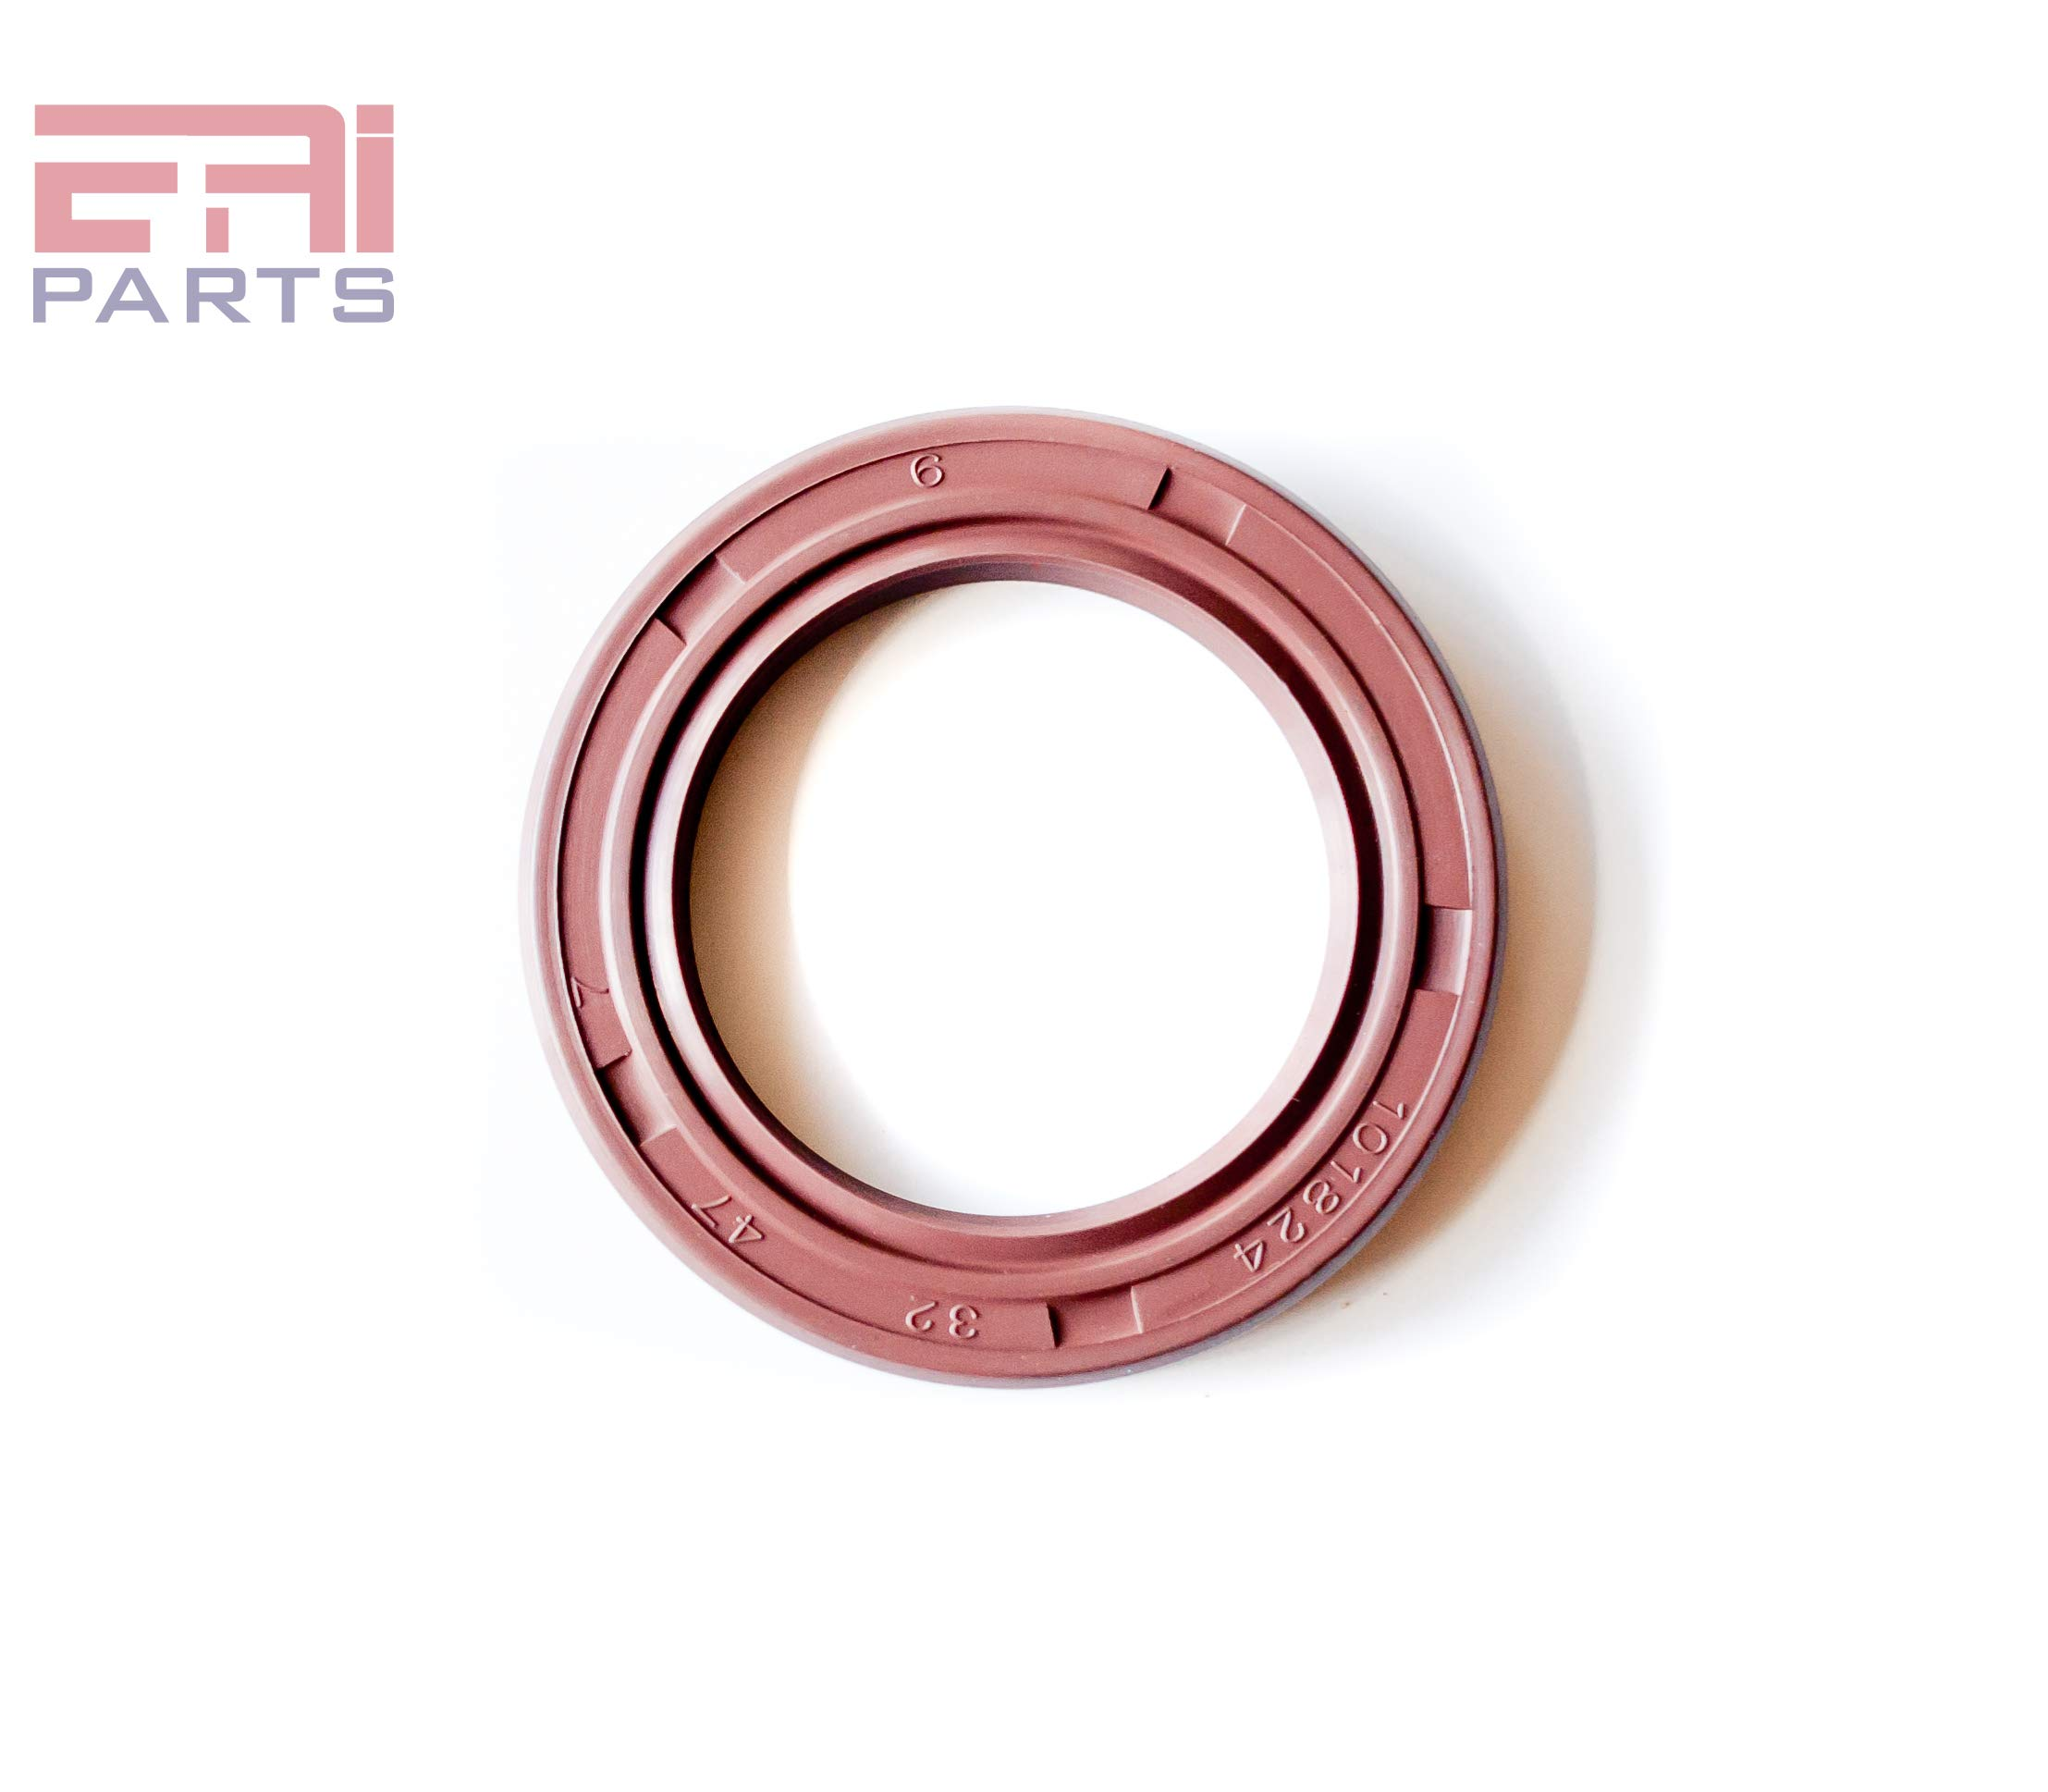 Oil Seal 1.500''x2.250''x0.313'' (10 PCS) Viton Oil Seal Grease Seal TC |EAI Rubber Double Lip w/Garter Spring. 1 1/2''x2 1/4''x5/16'' | 38.1mmX57.15mmX7.95mm by EAI (Image #2)